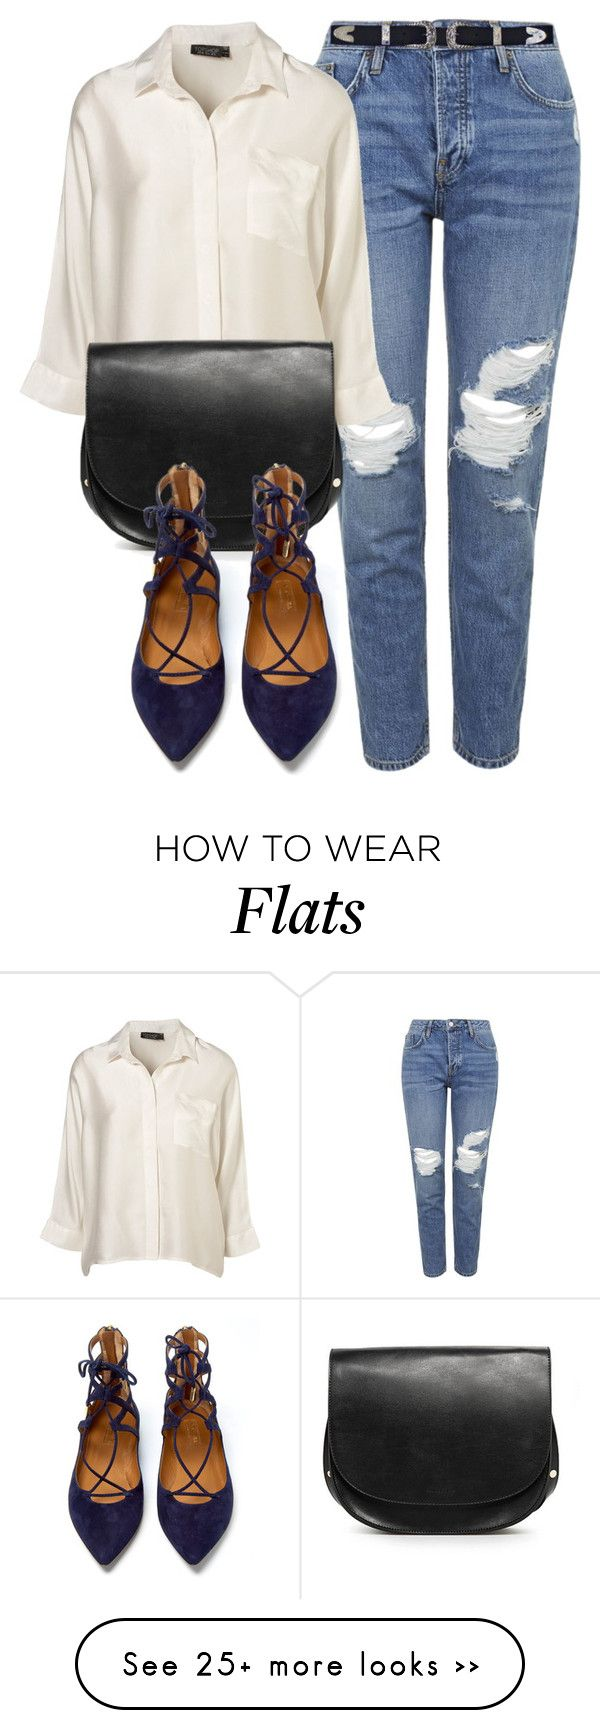 """Untitled #4390"" by laurenmboot on Polyvore featuring Topshop, MANGO and Aquazzura"